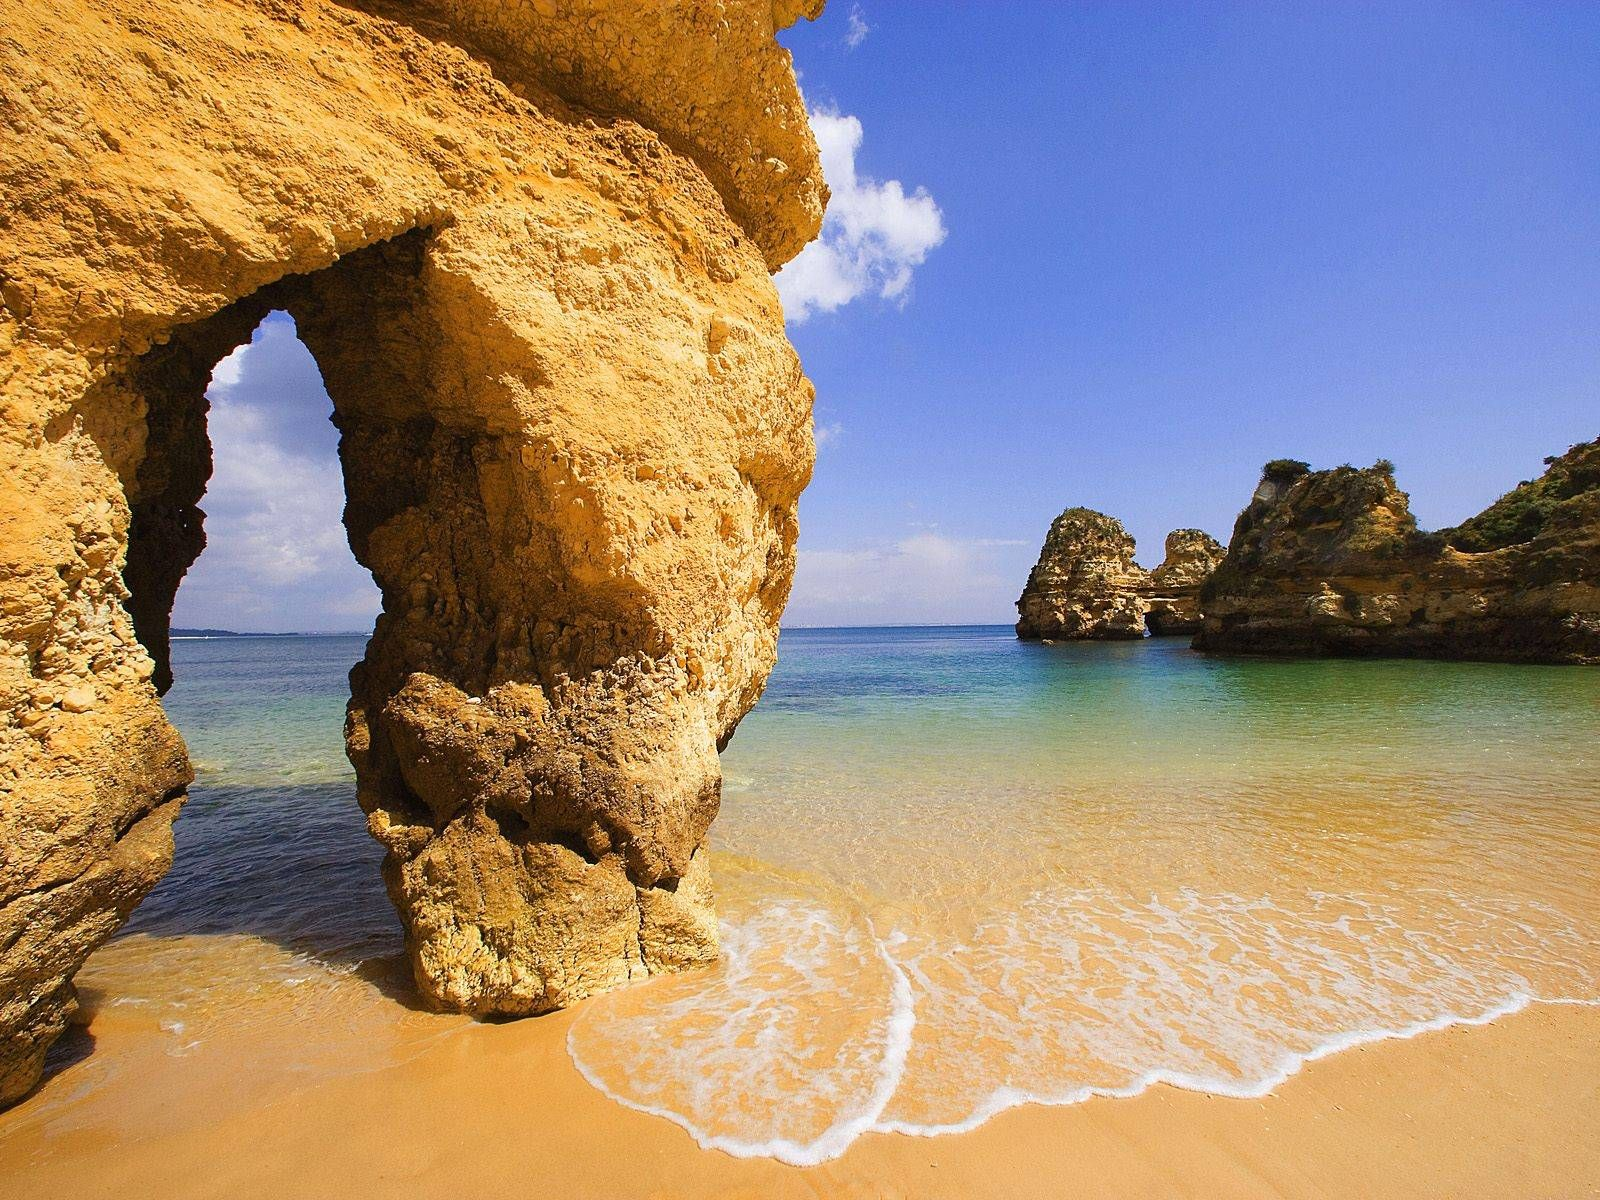 Shallow Water, Algarve, Portugal